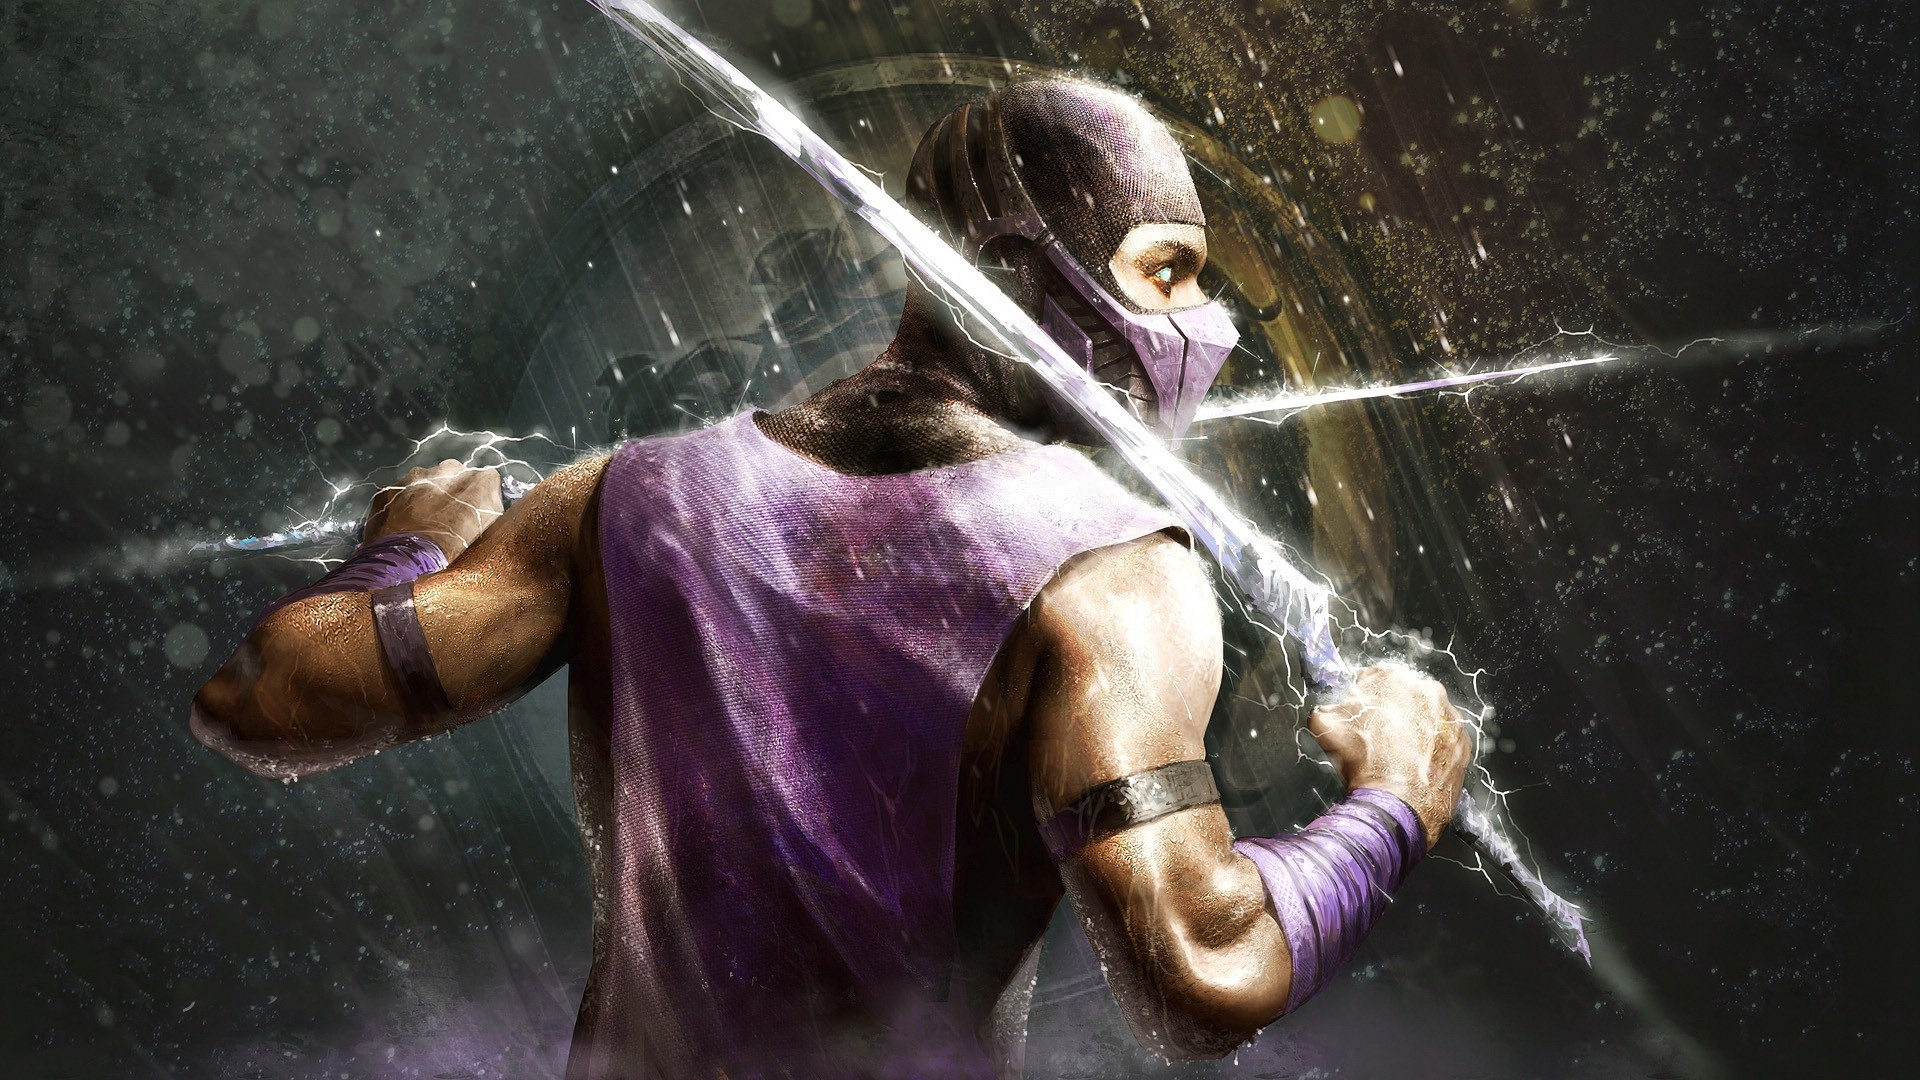 Mortal Kombat Scorpion HD Wallpaper 1920x1080